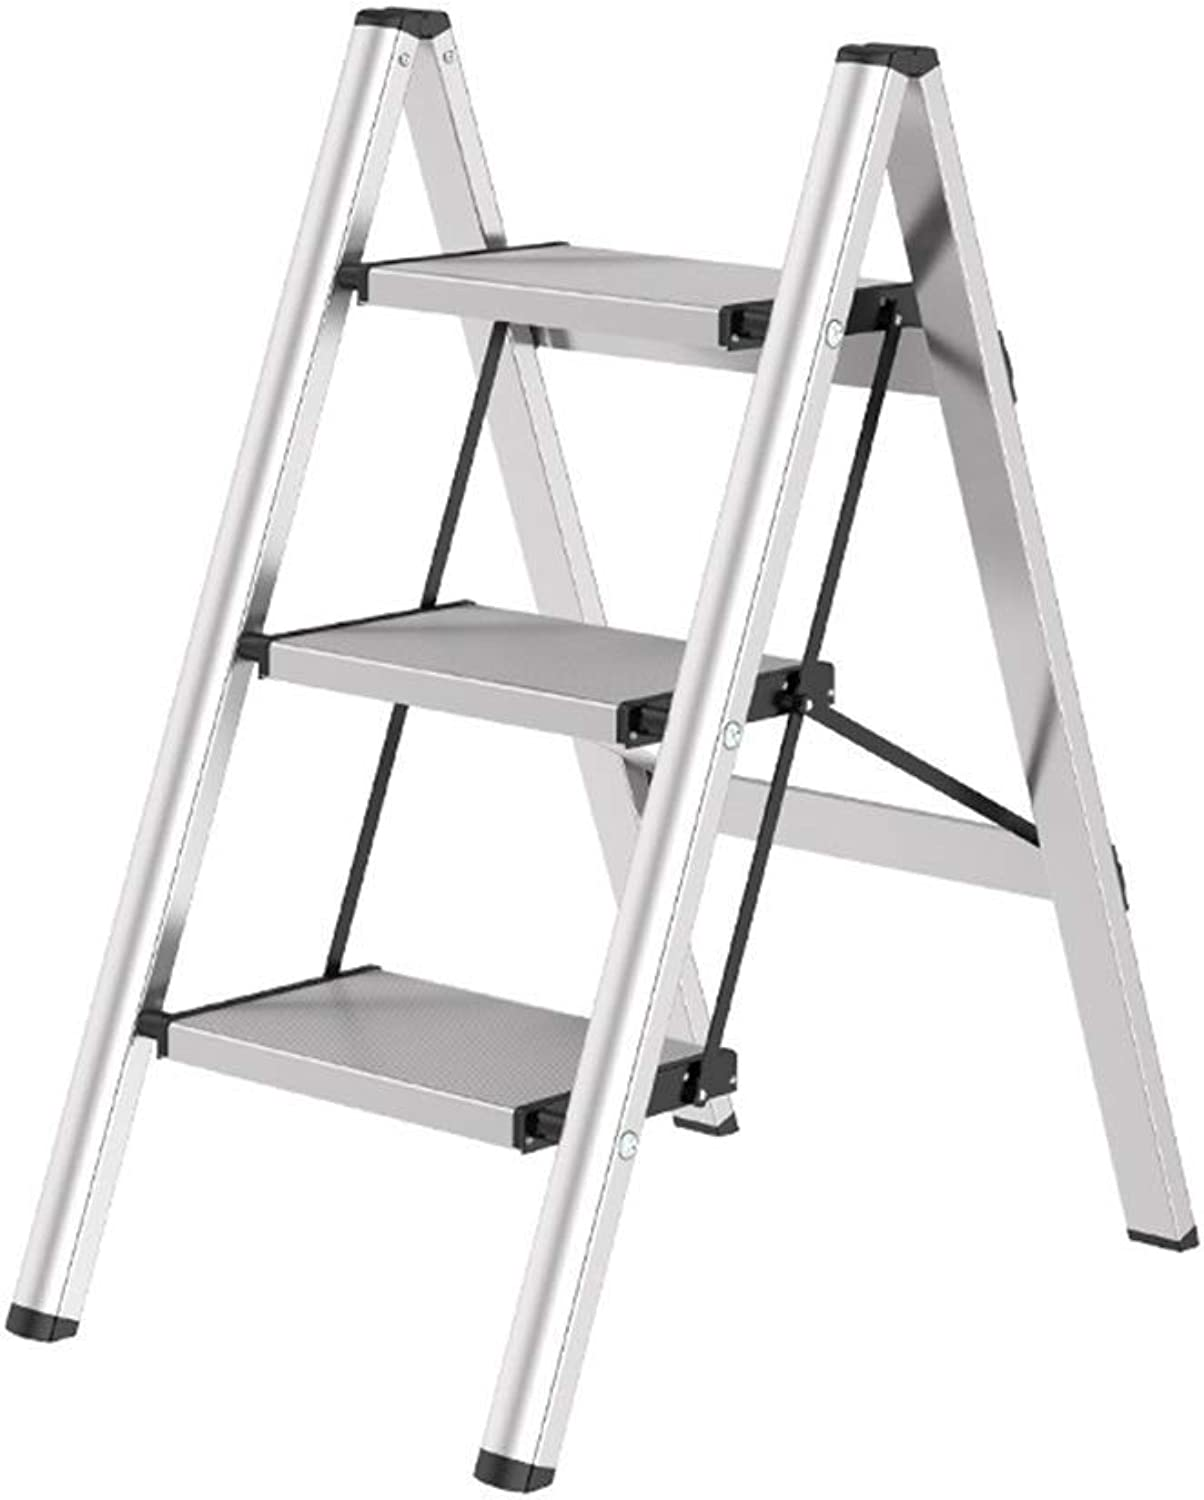 S&RL shoes Seat Stool Storage Ladder Stool Stepladders al Thick Aluminum Folding Ladder Household Portable Step Stool Housing Multifunctional Stools, White, 45  67.5  81cm